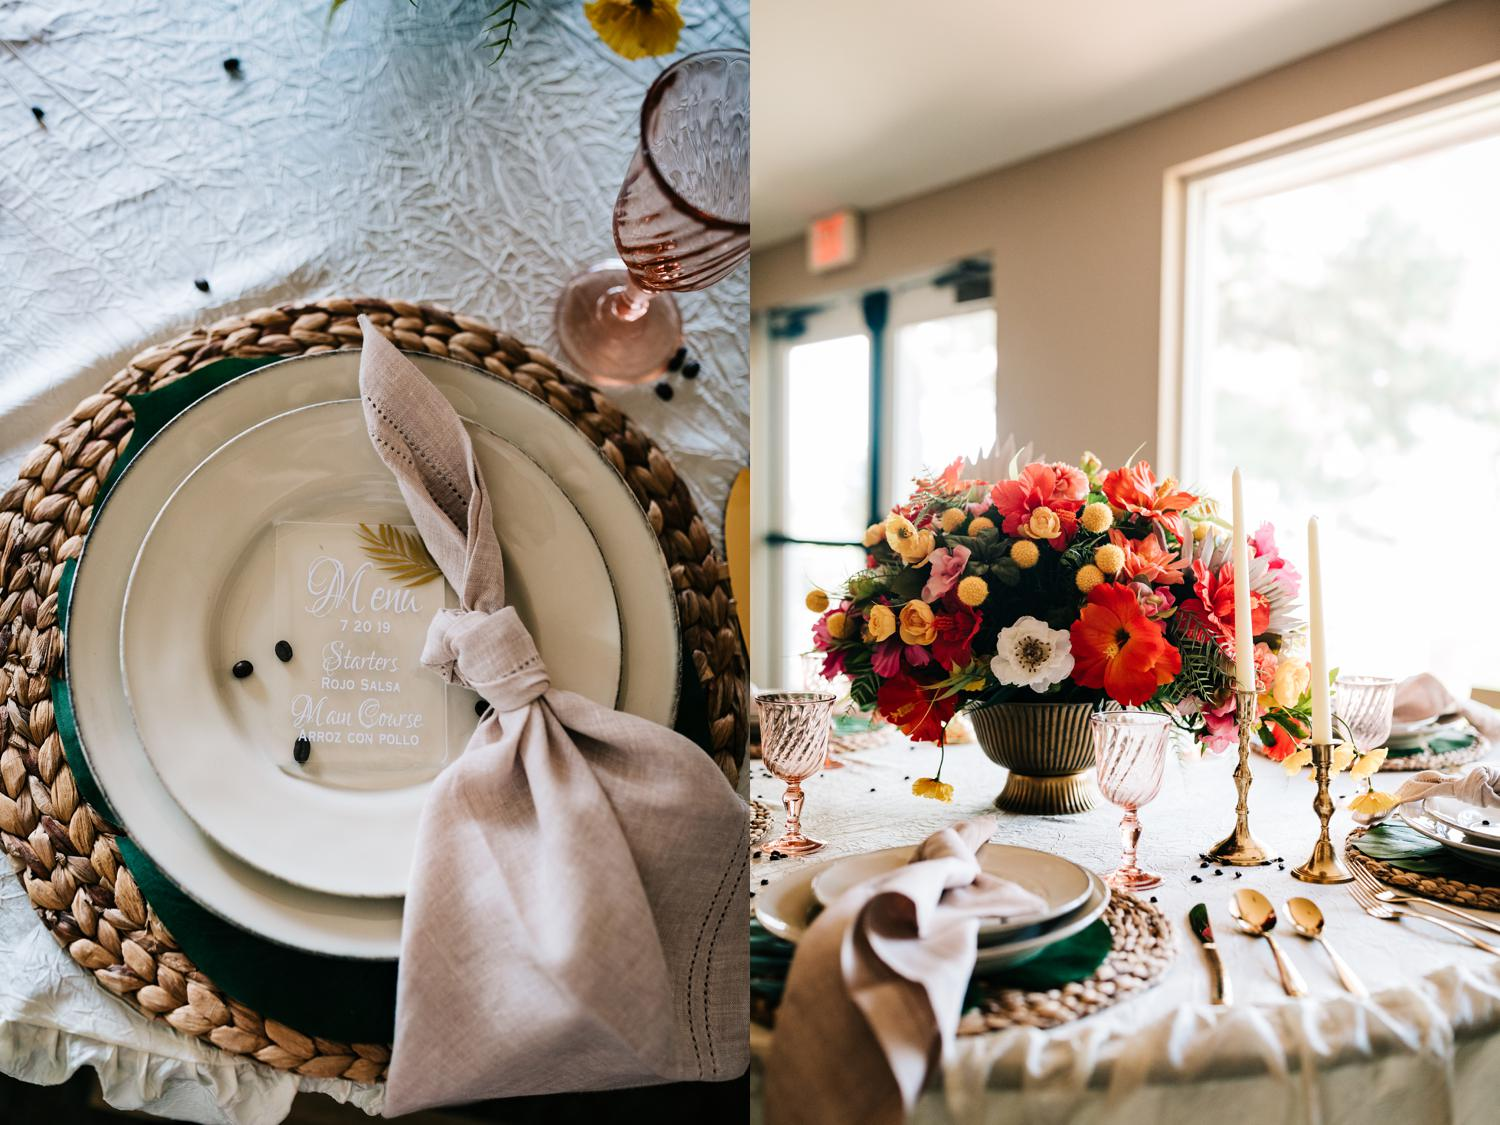 Plate sets and florals for wedding reception tables in Albuquerque, New Mexico